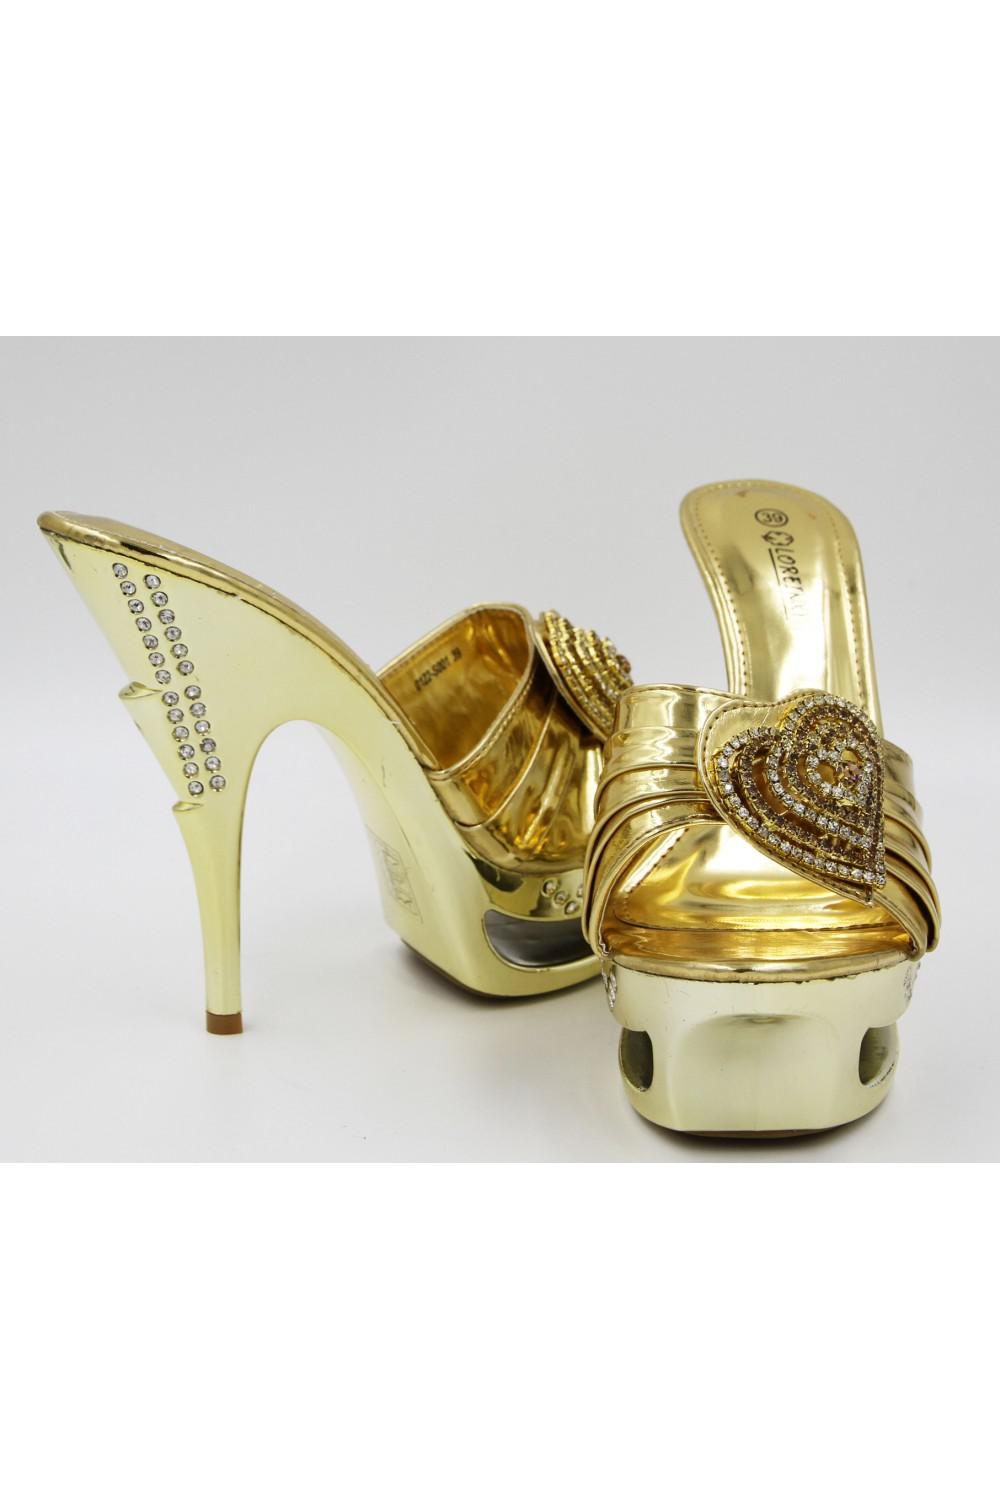 Chaussures Or réf  0122,5001G